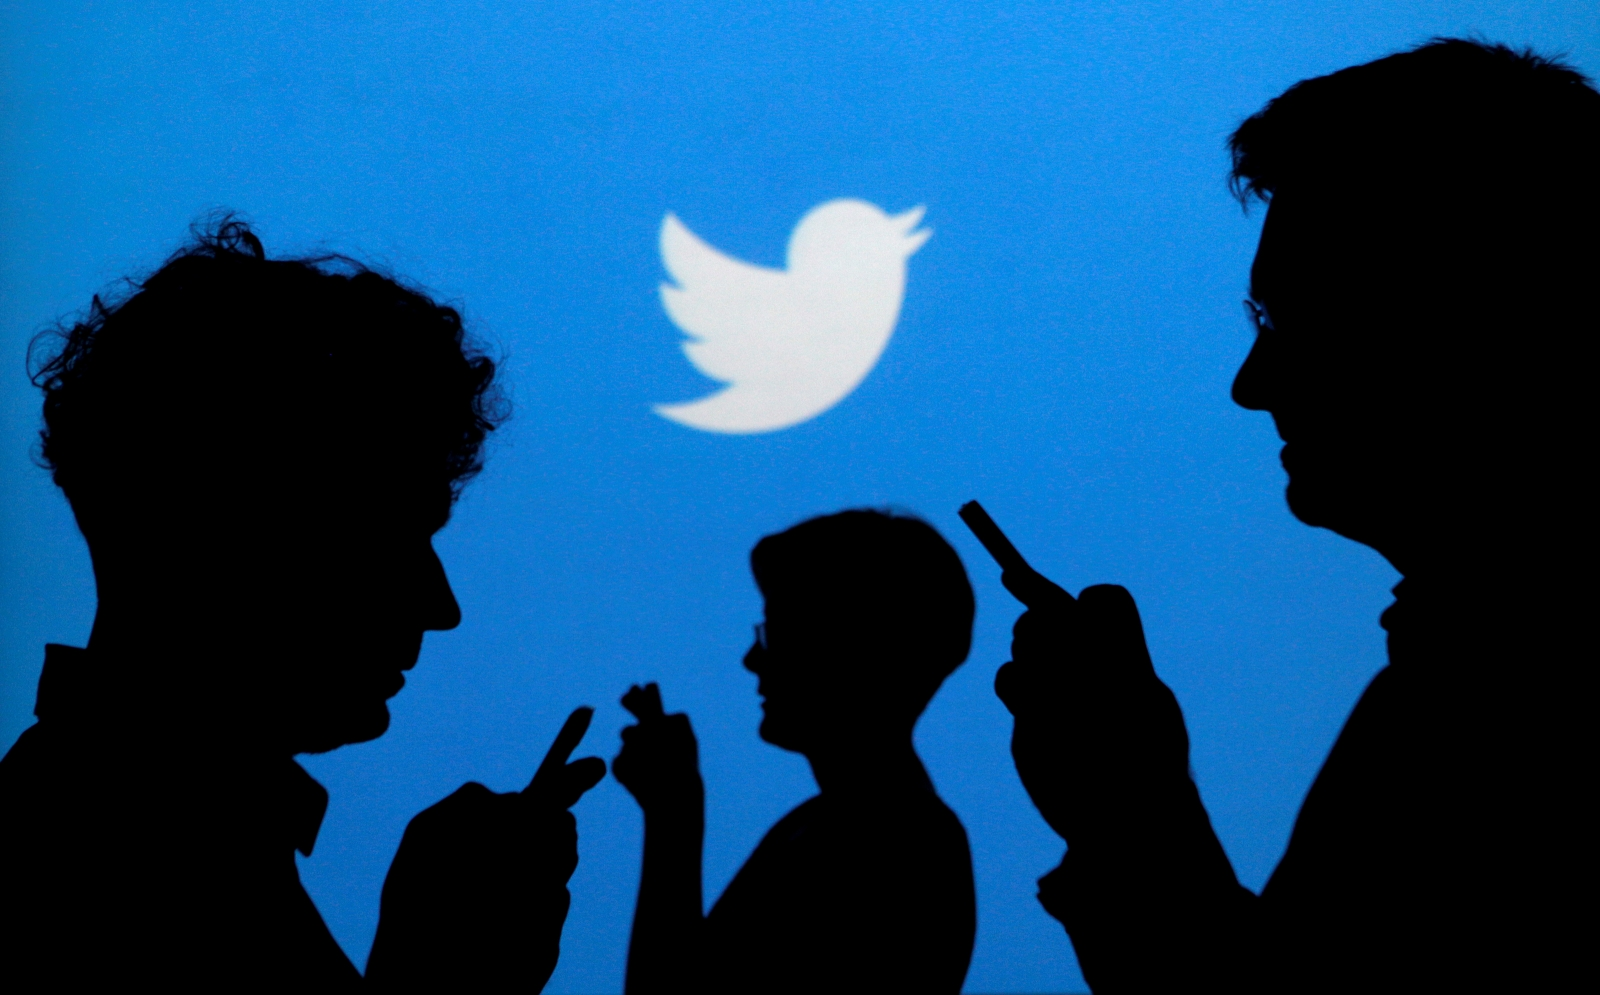 Twitter expands live broadcasting and joins hands with Bloomberg to roll out 24/7 video news